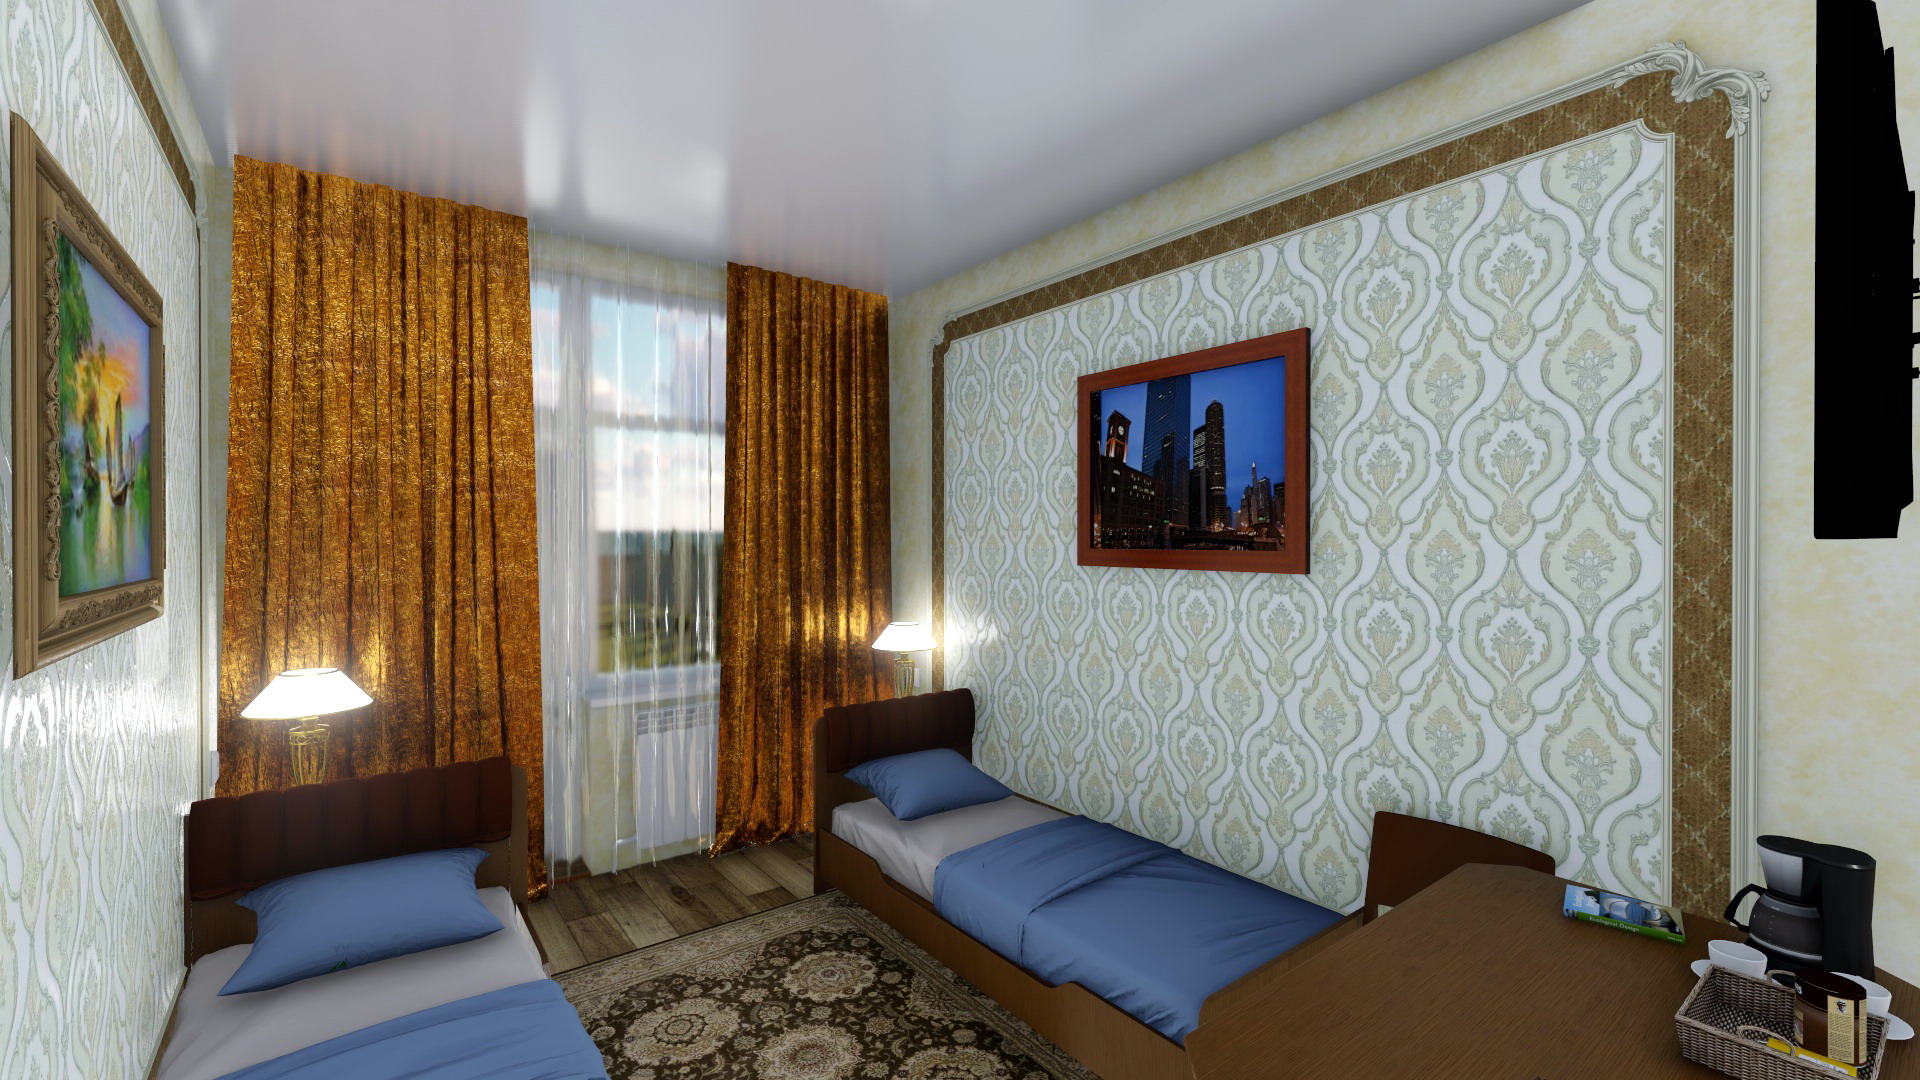 3D design of the interior reconstruction of the sanatorium building. (Video attached) in Cinema 4d Other image